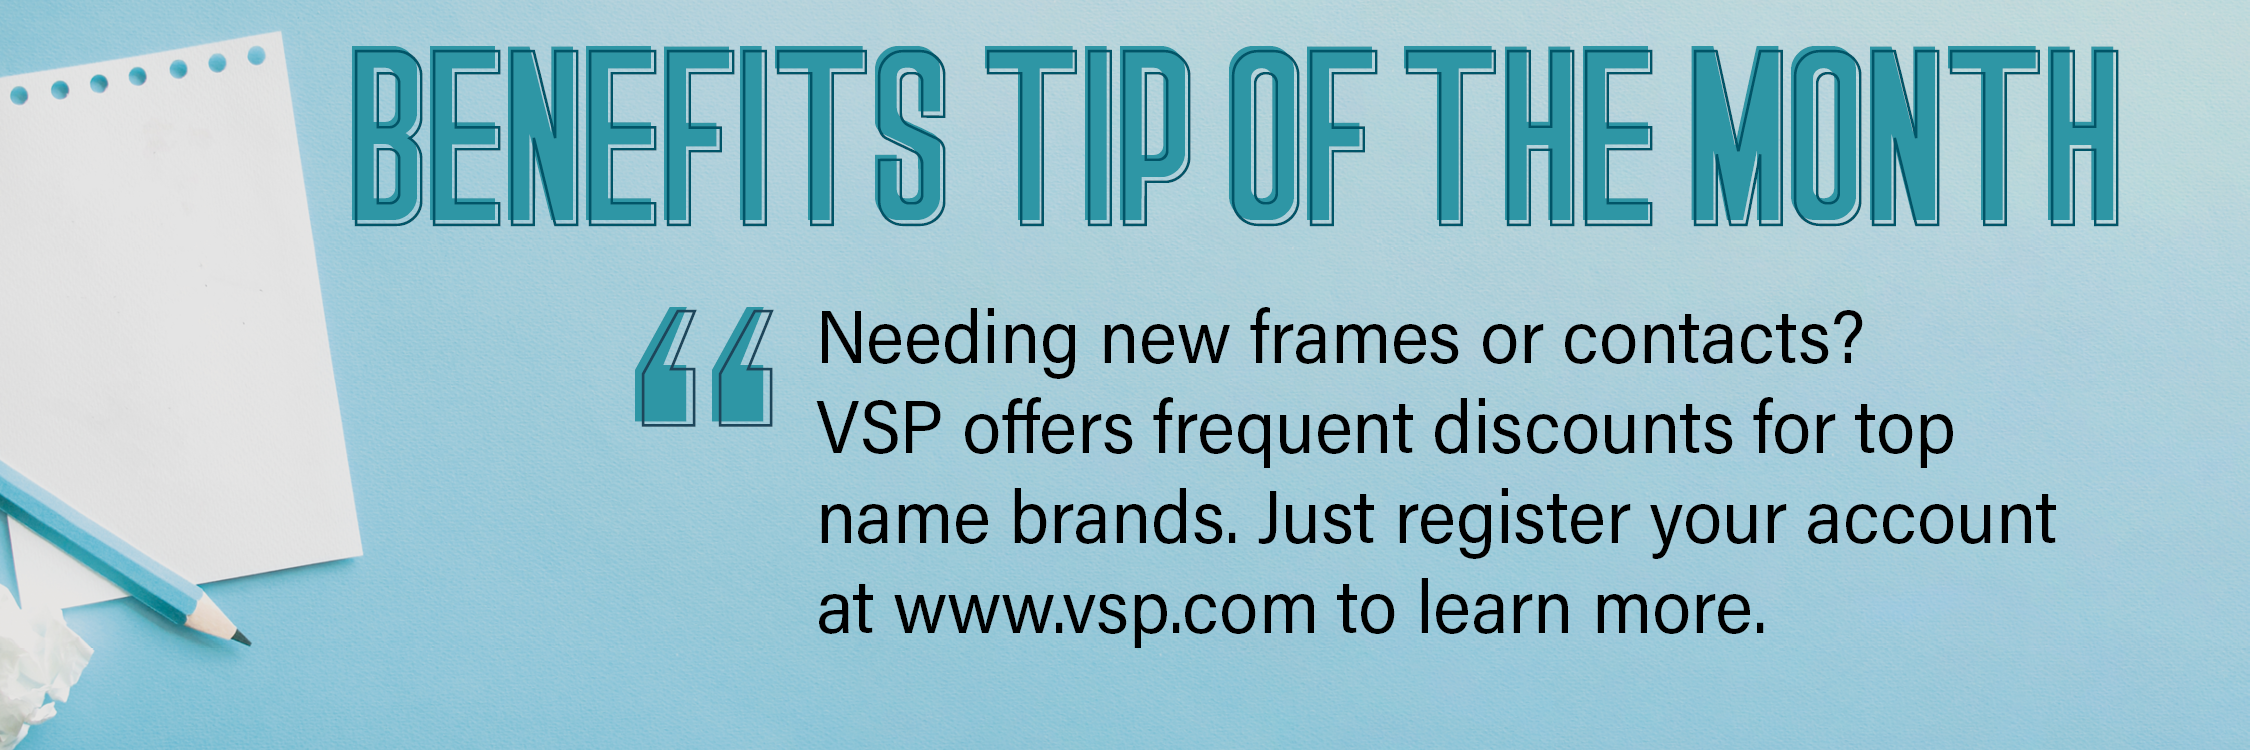 Image 4: April 2021 Tip of the Month